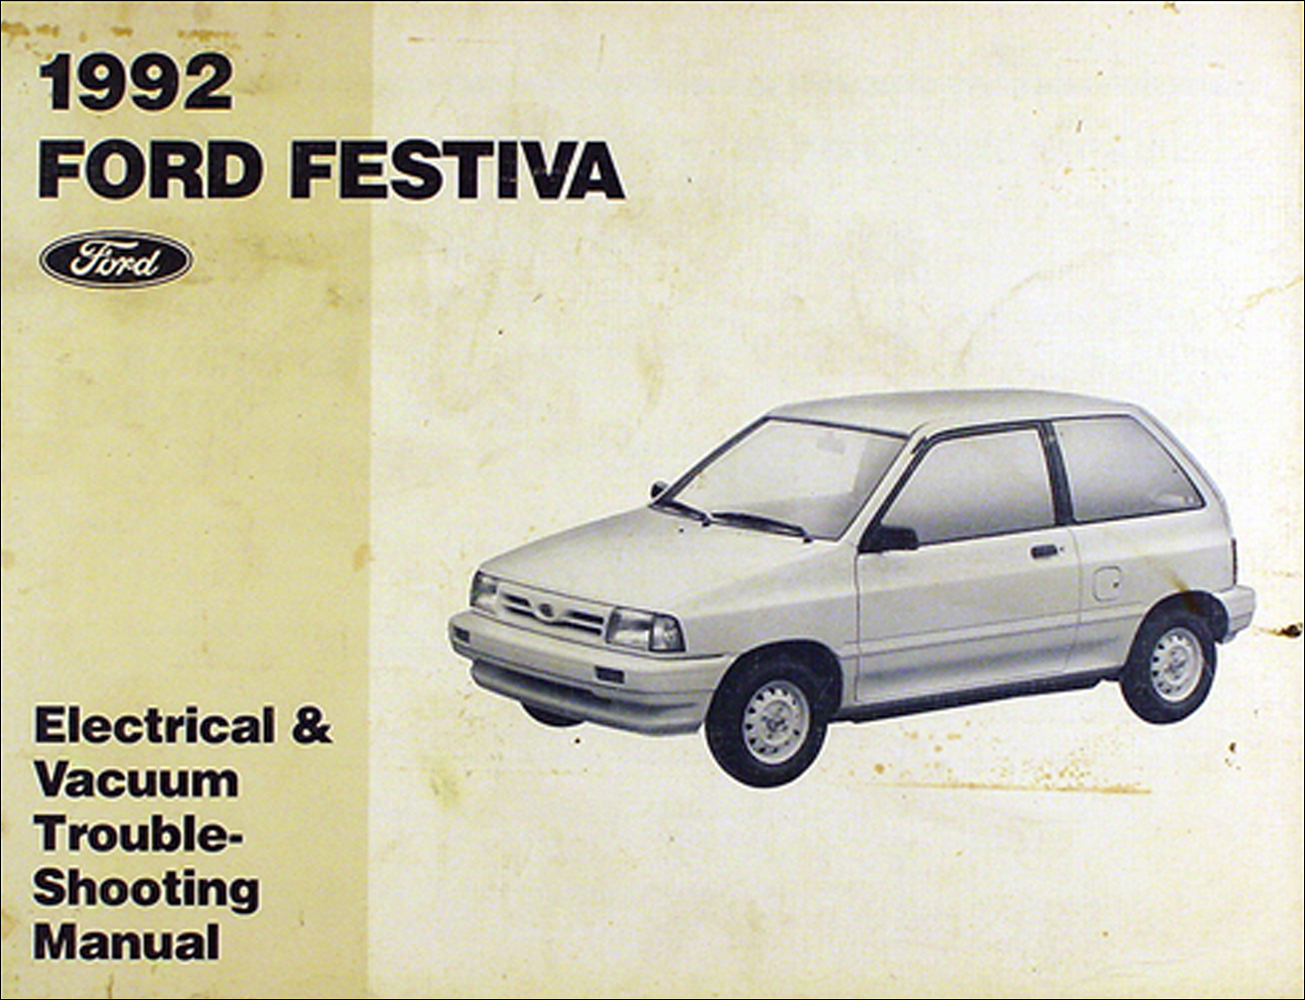 1992 Ford Festiva Original Electrical & Vacuum Troubleshooting Manual